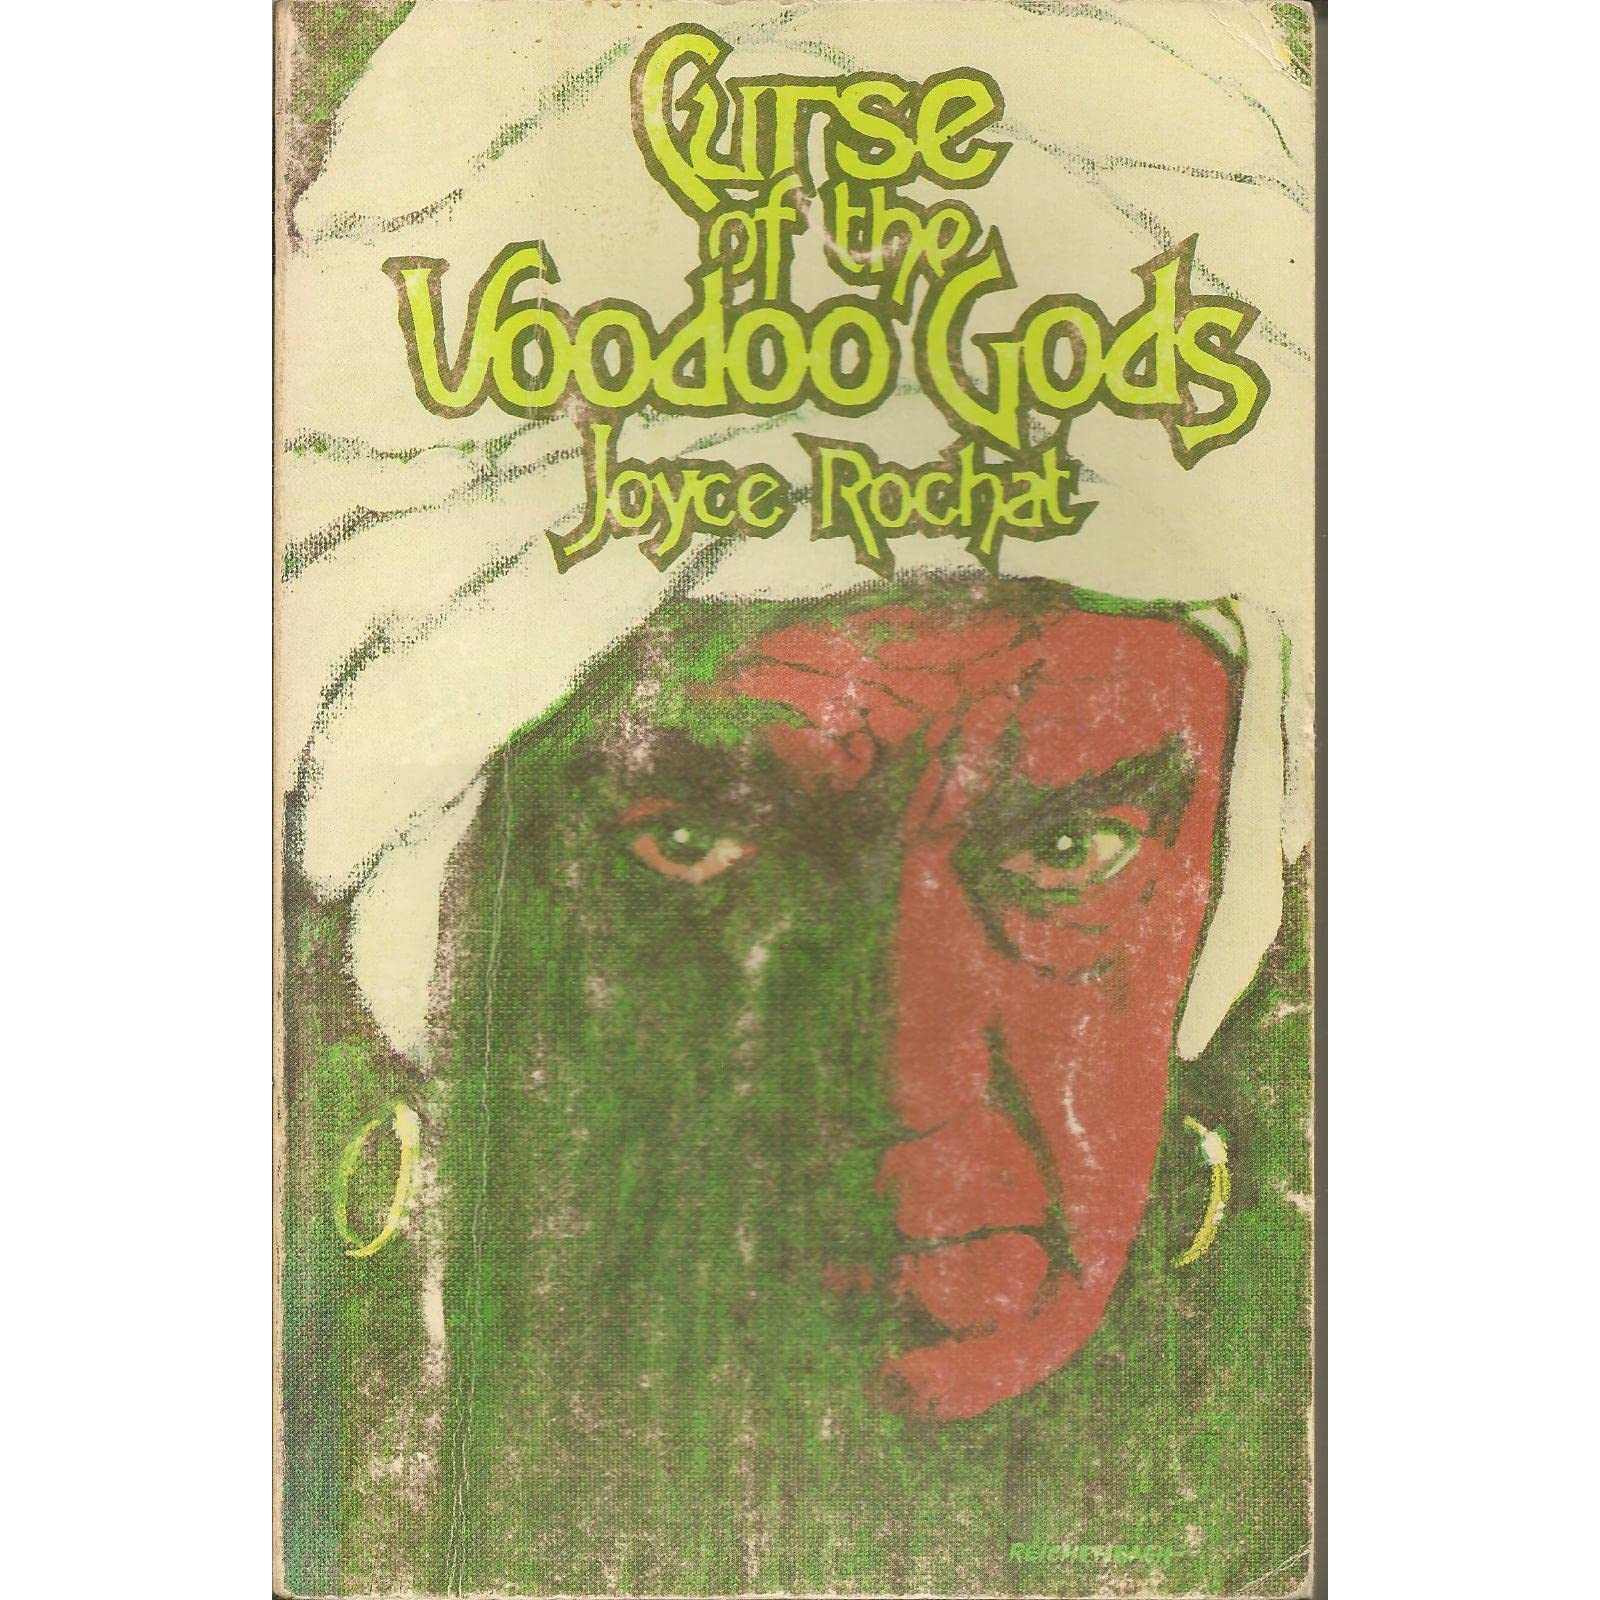 Curse of the Voodoo Gods by Joyce Rochat